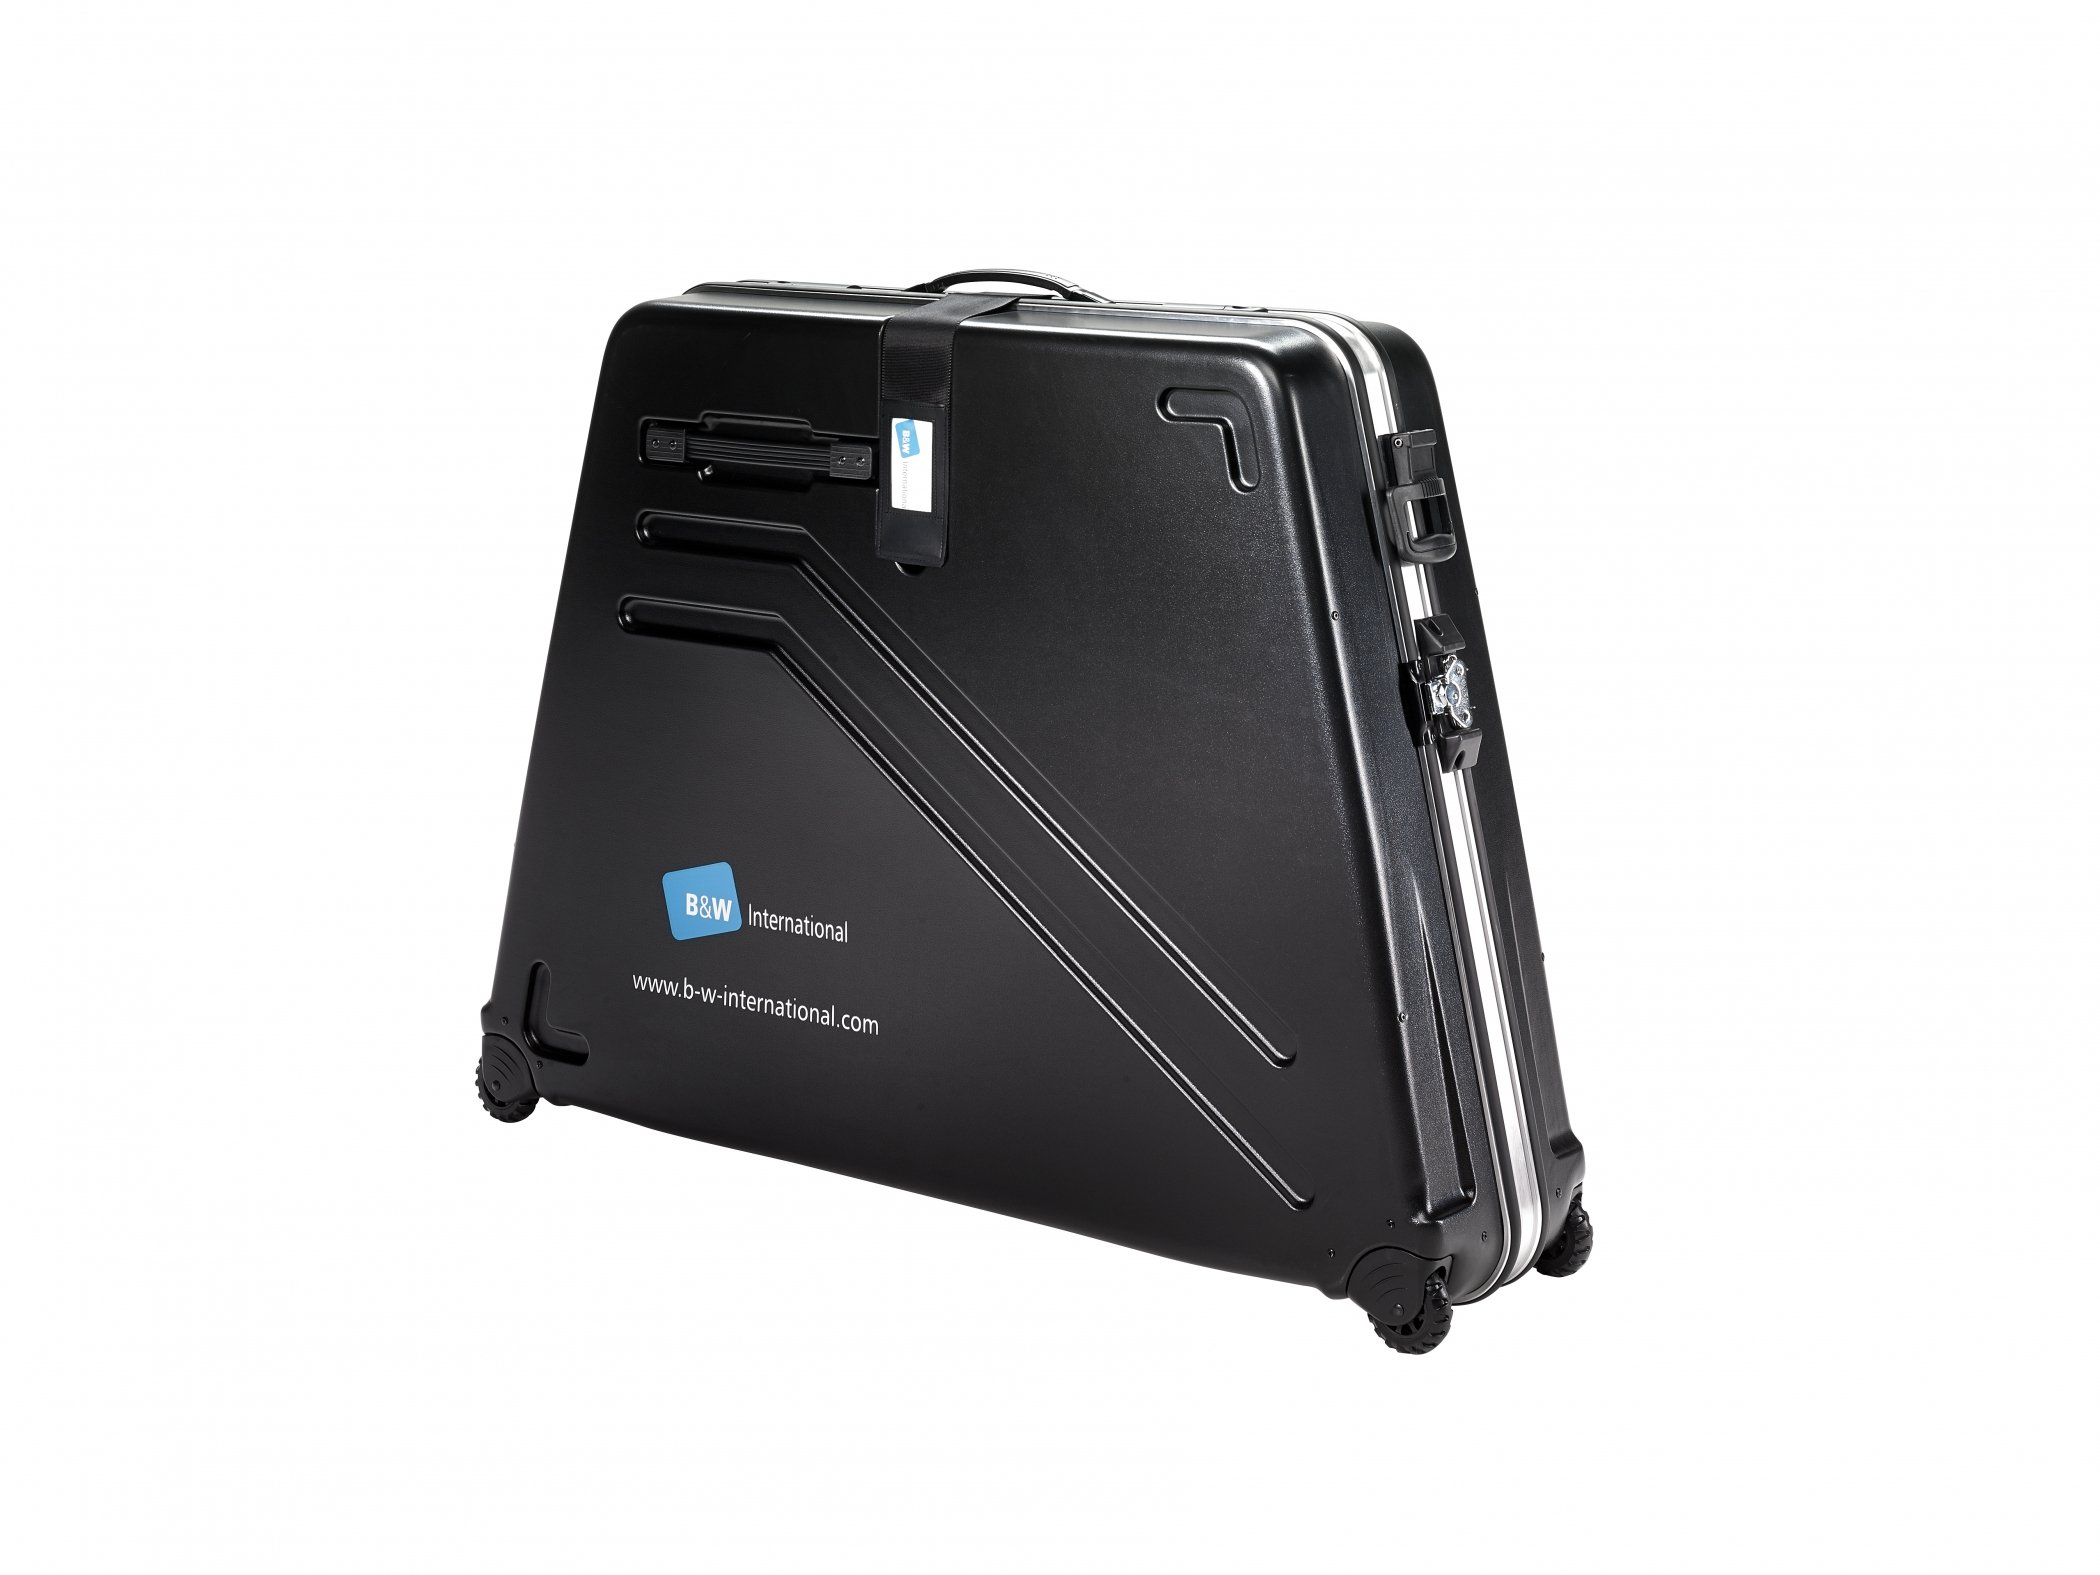 B&W Wheeled Bicycle Bike Box Travel Case 9.9kg light-weight